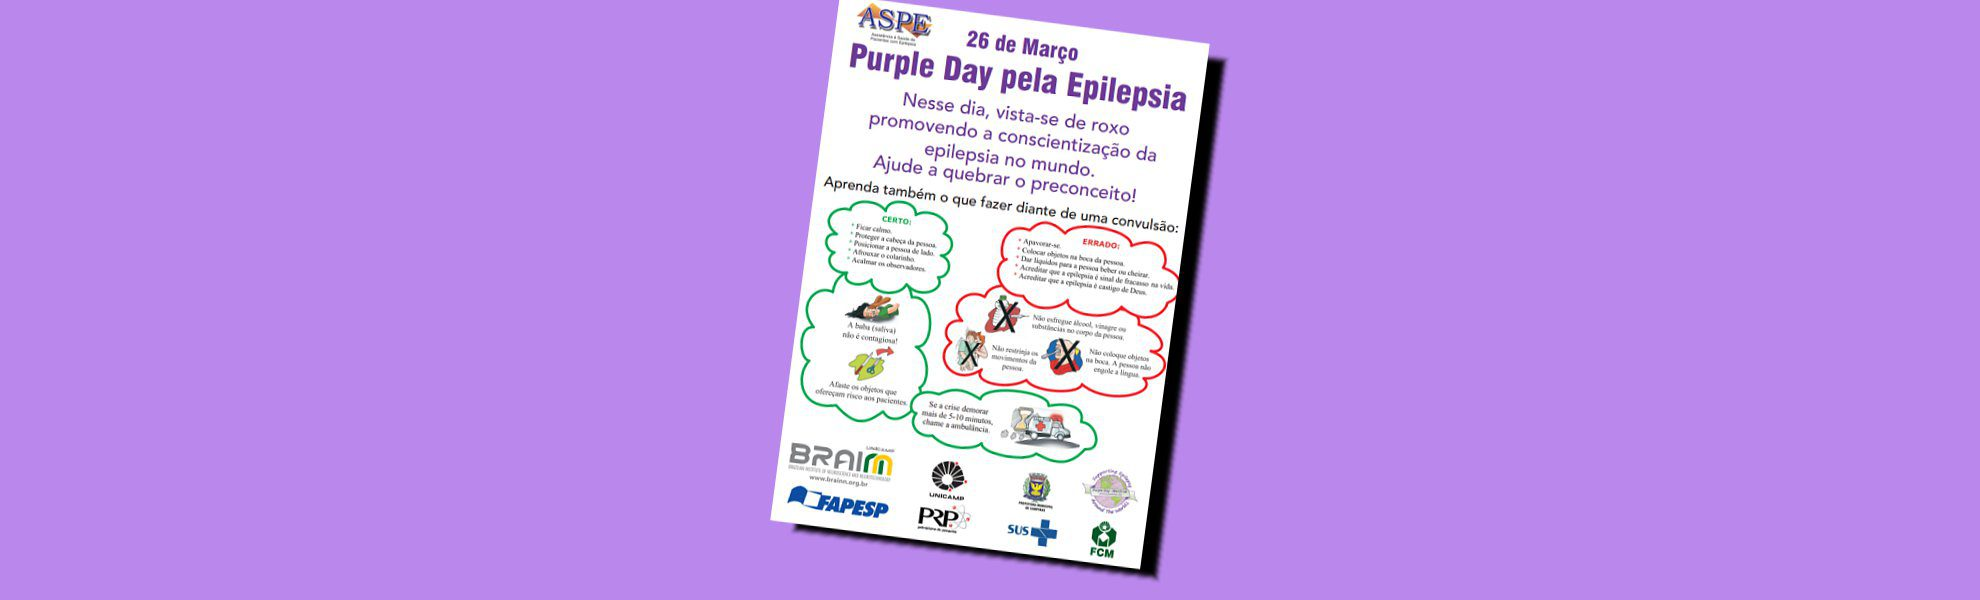 brainn-flyer purple day pela epilepsia